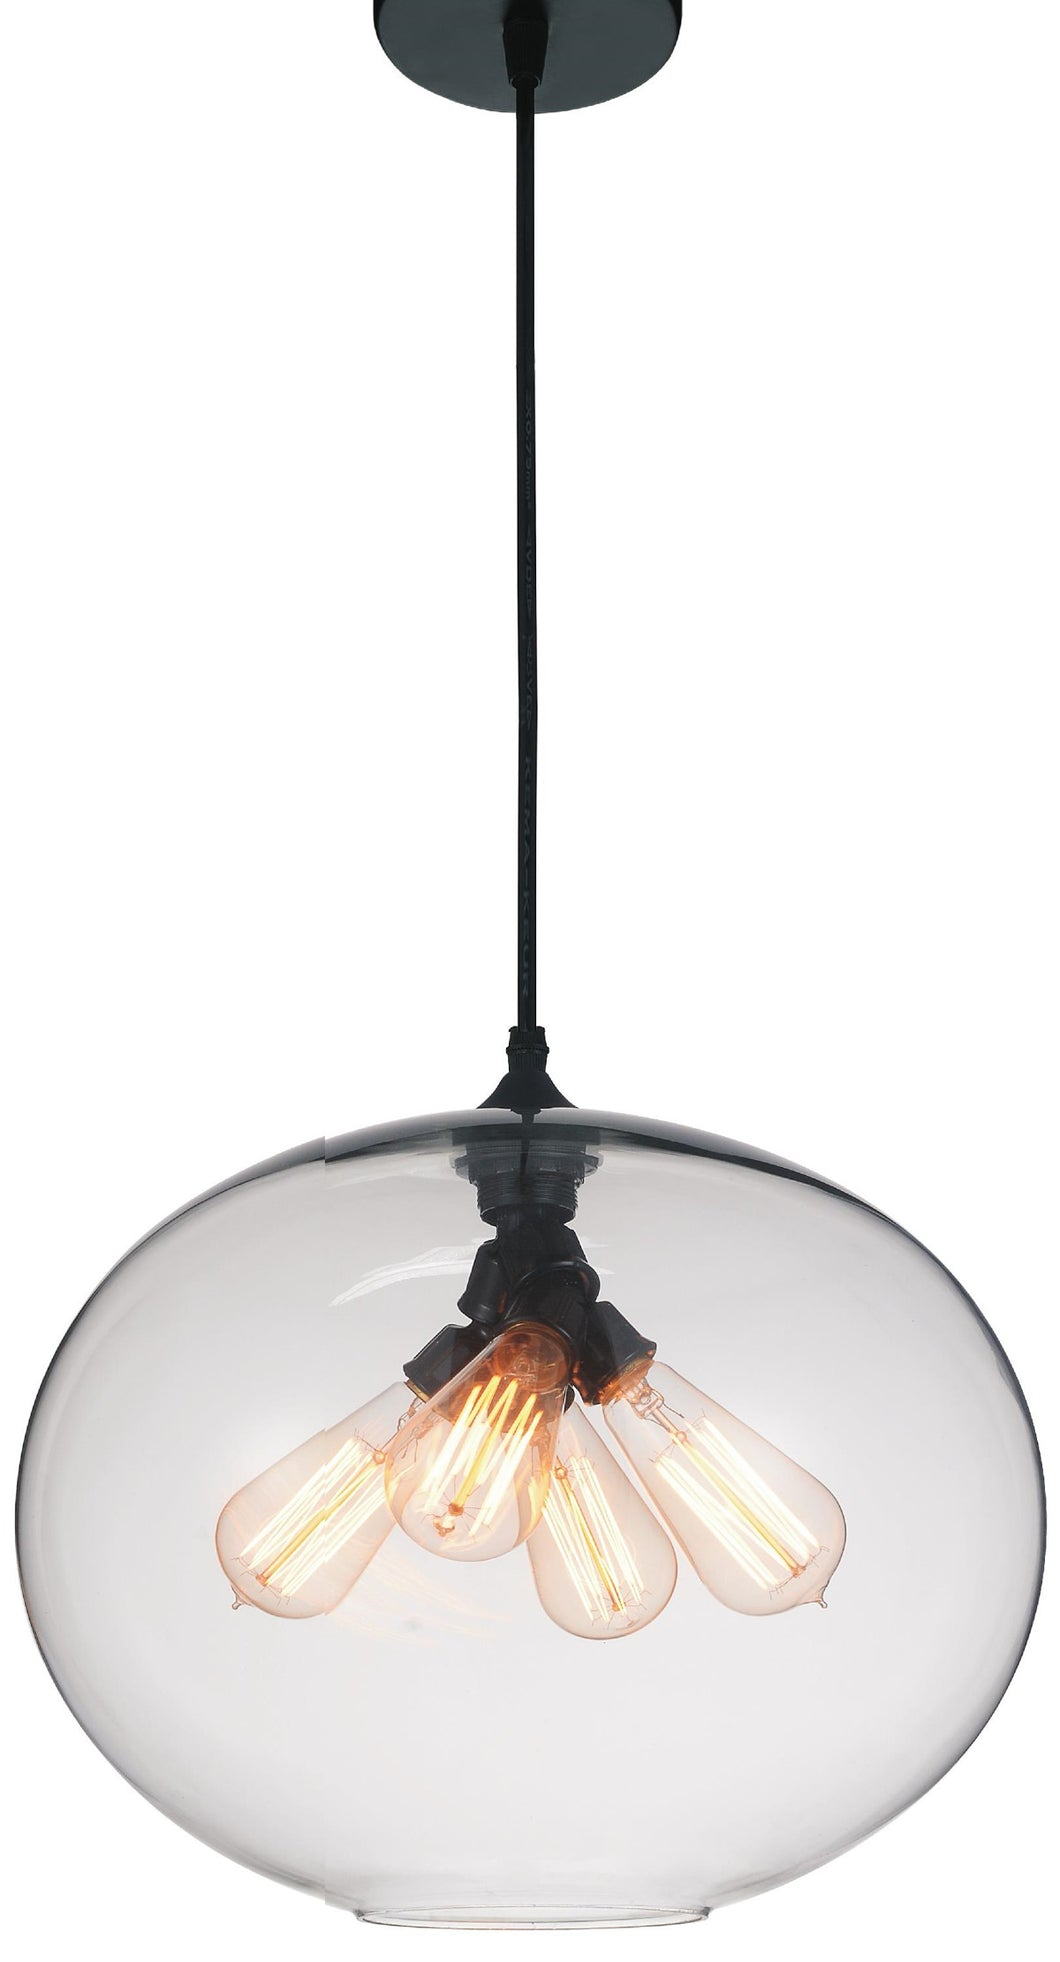 4 Light Down Pendant with Transparent finish